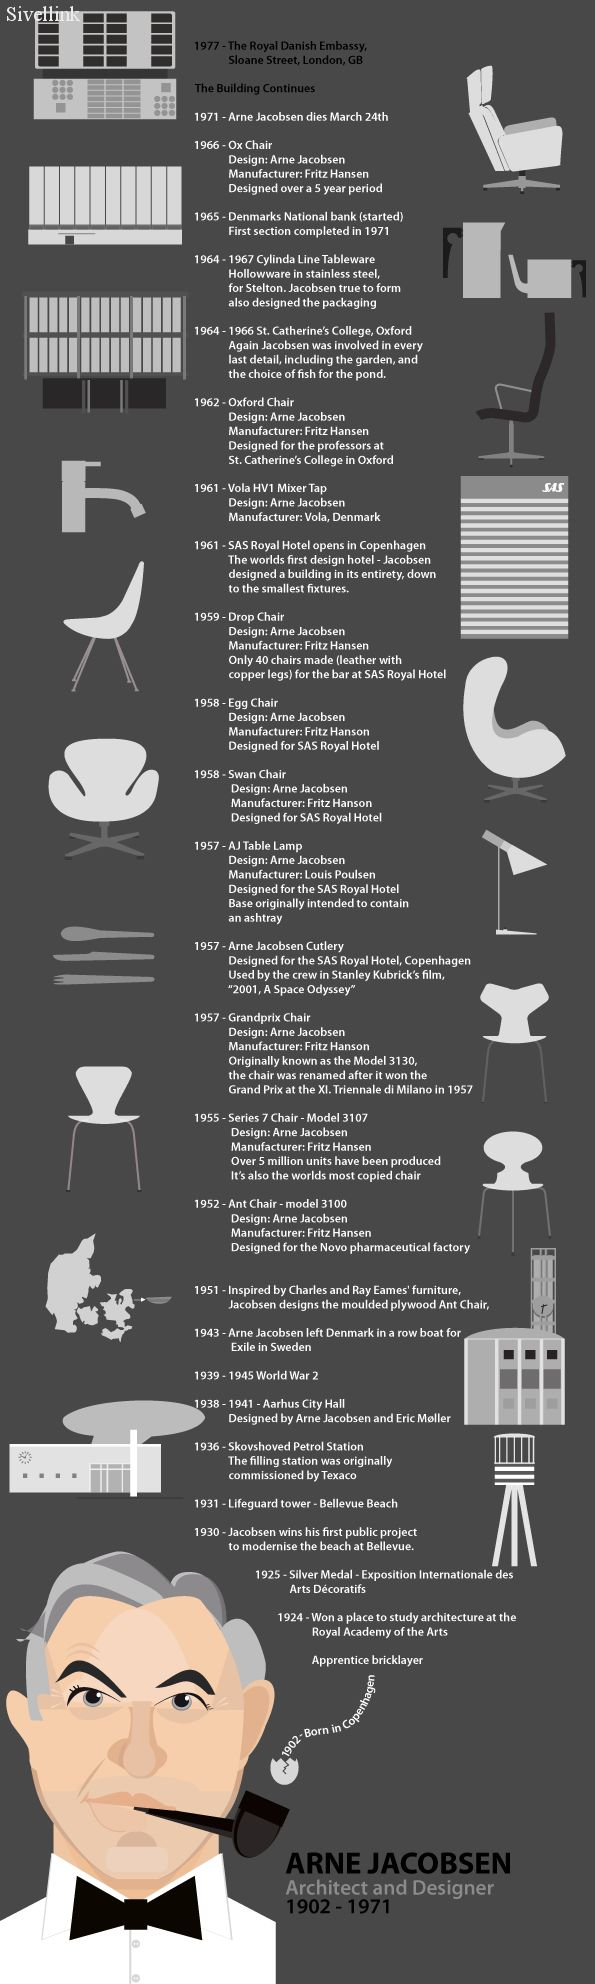 Arne Jacobsen Infograph - the  godfather of #dansk #design